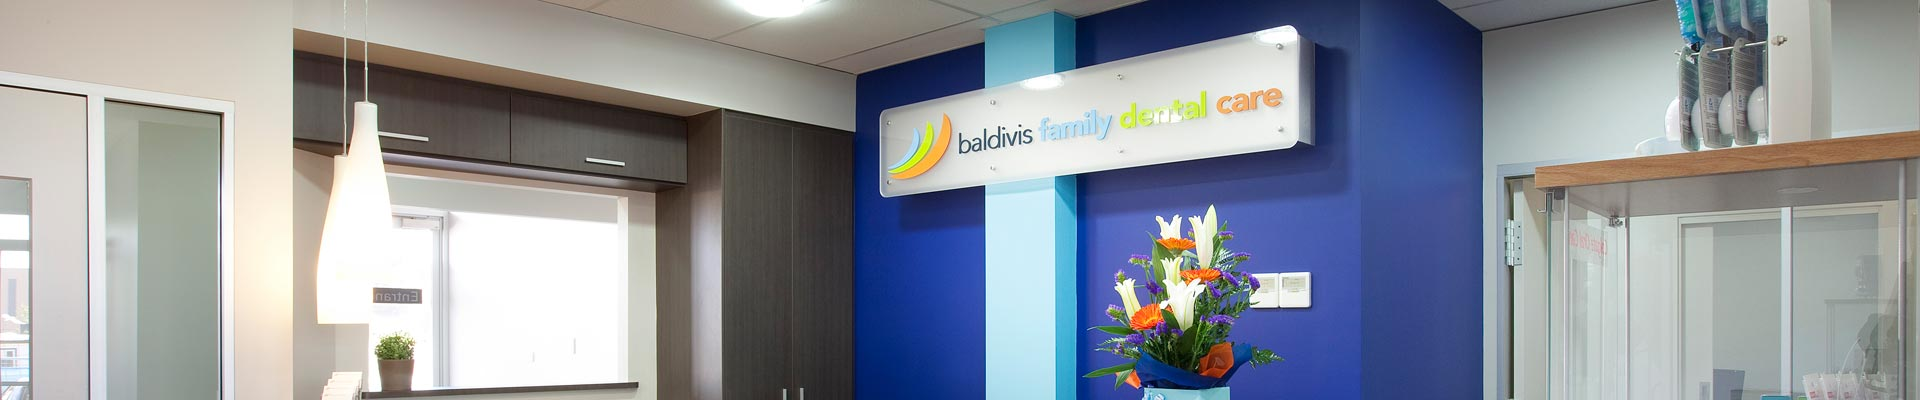 Baldivis Family Dental Care